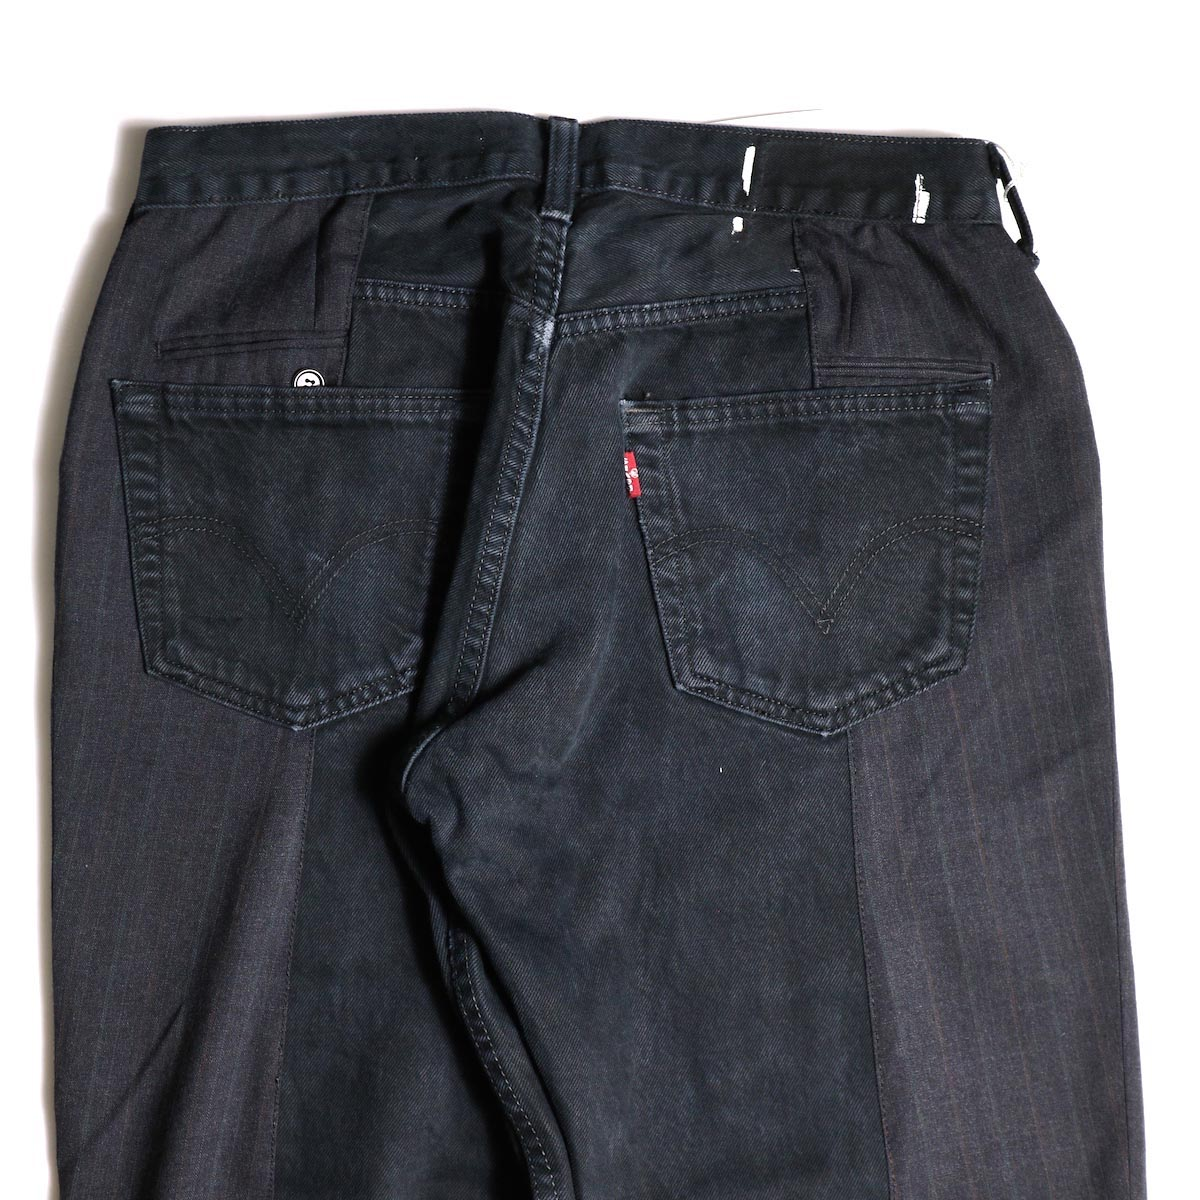 OLD PARK / Docking Jeans Black (Msize-A)ヒップポケット